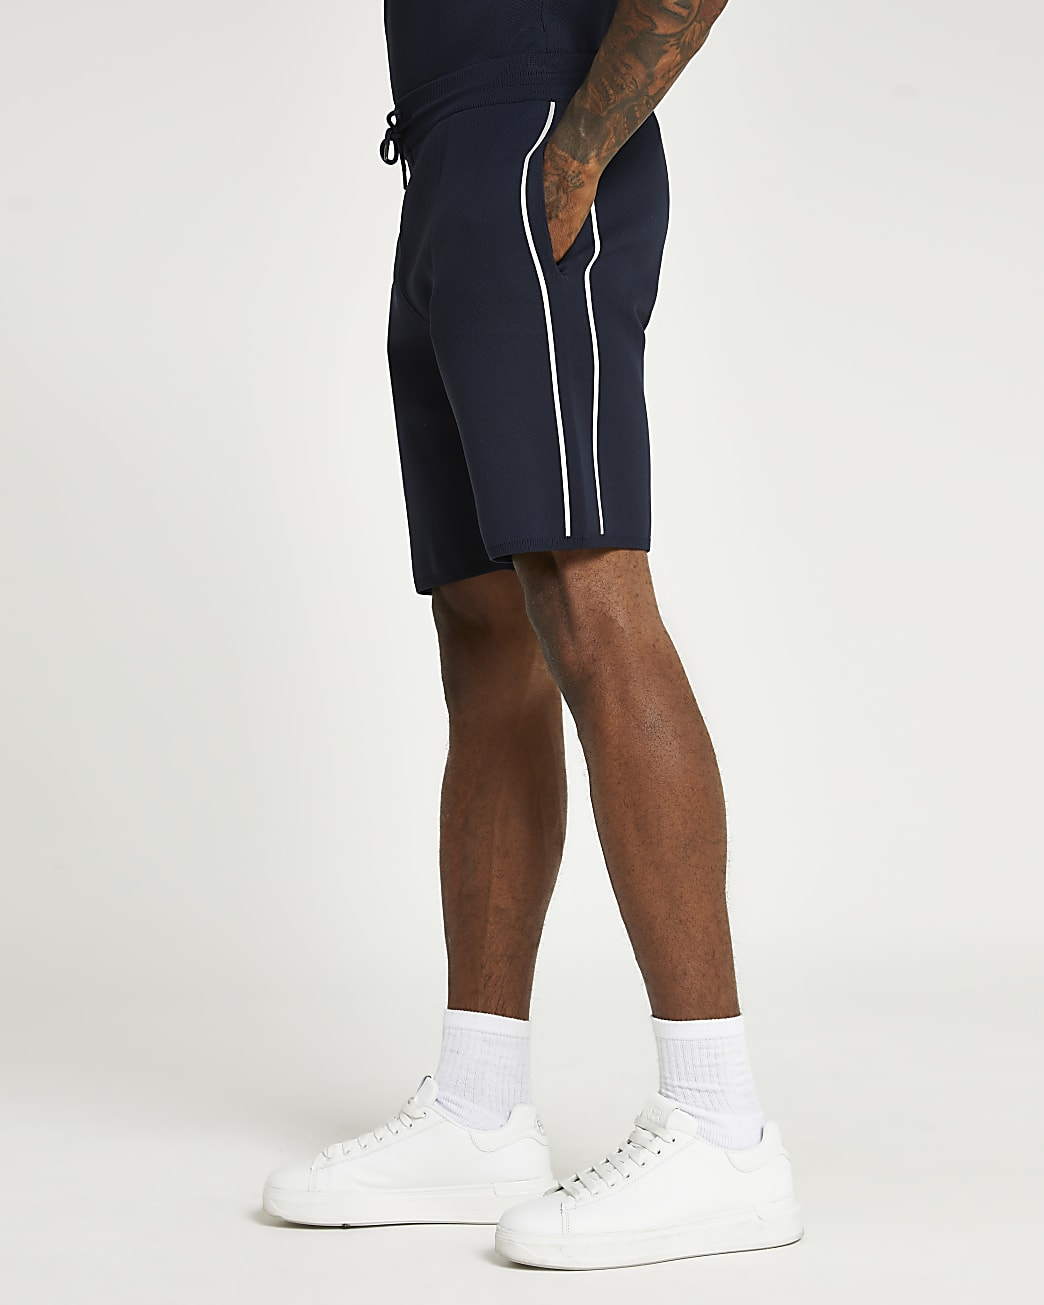 Navy slim fit side piped shorts